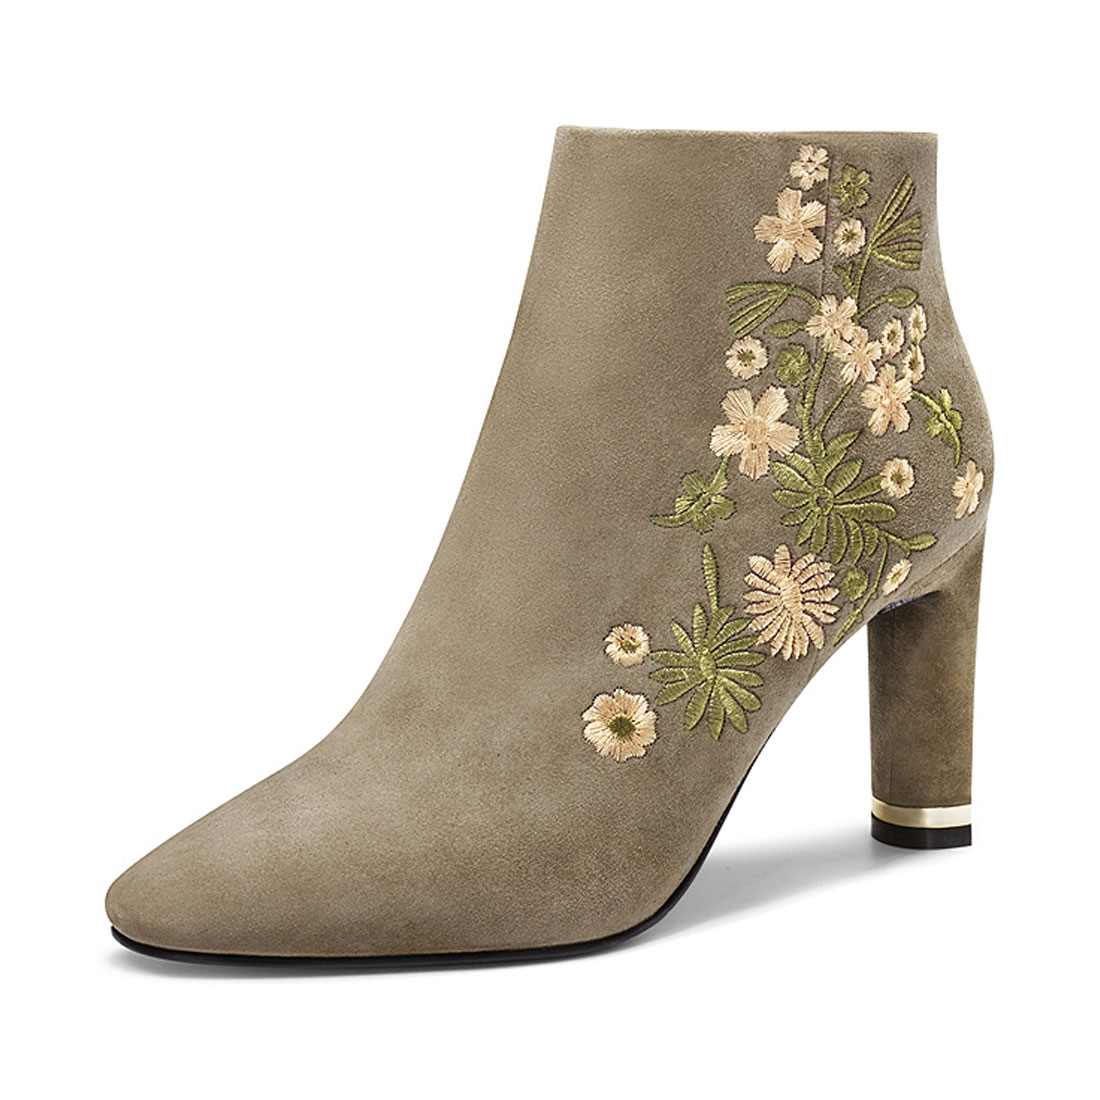 2018 suede leather with flower embroidery winter dress ladies ankle boot  YH1214